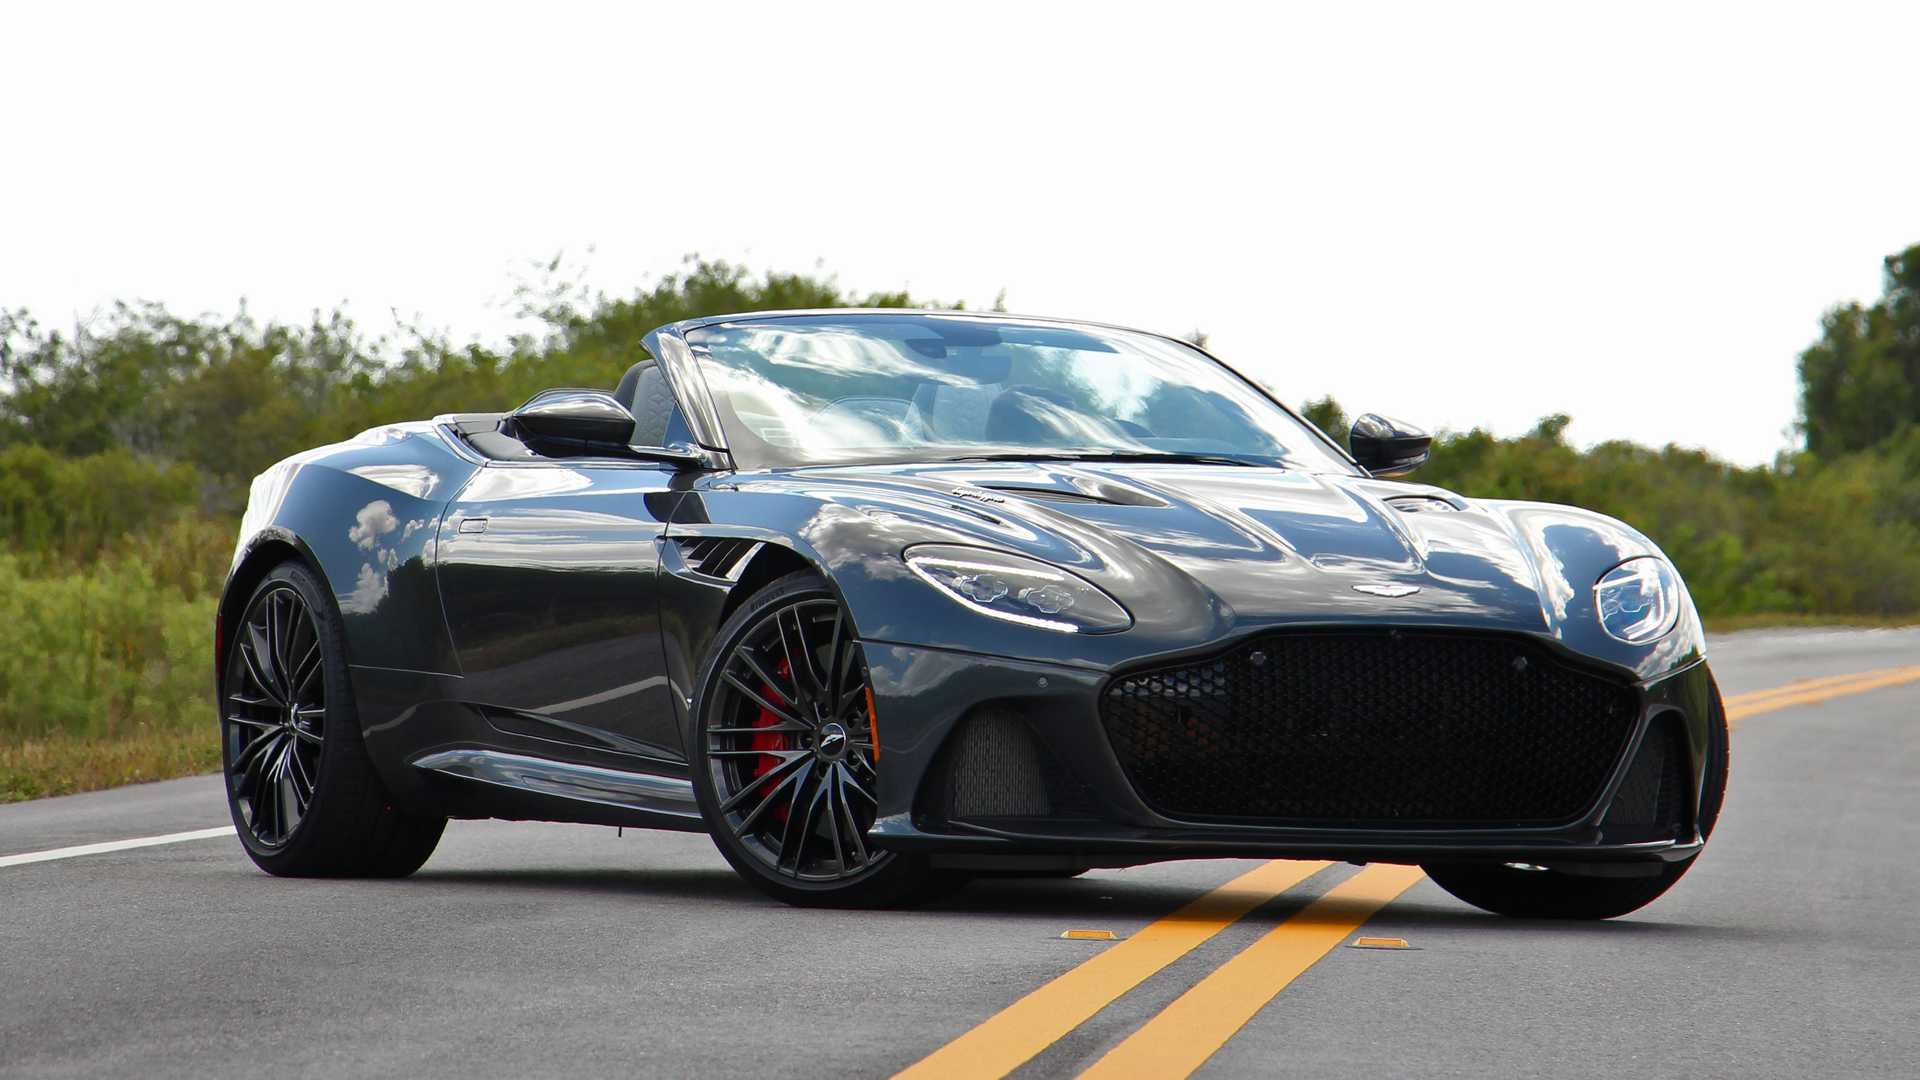 2020 Aston Martin Dbs Superleggera Volante Review Superlative